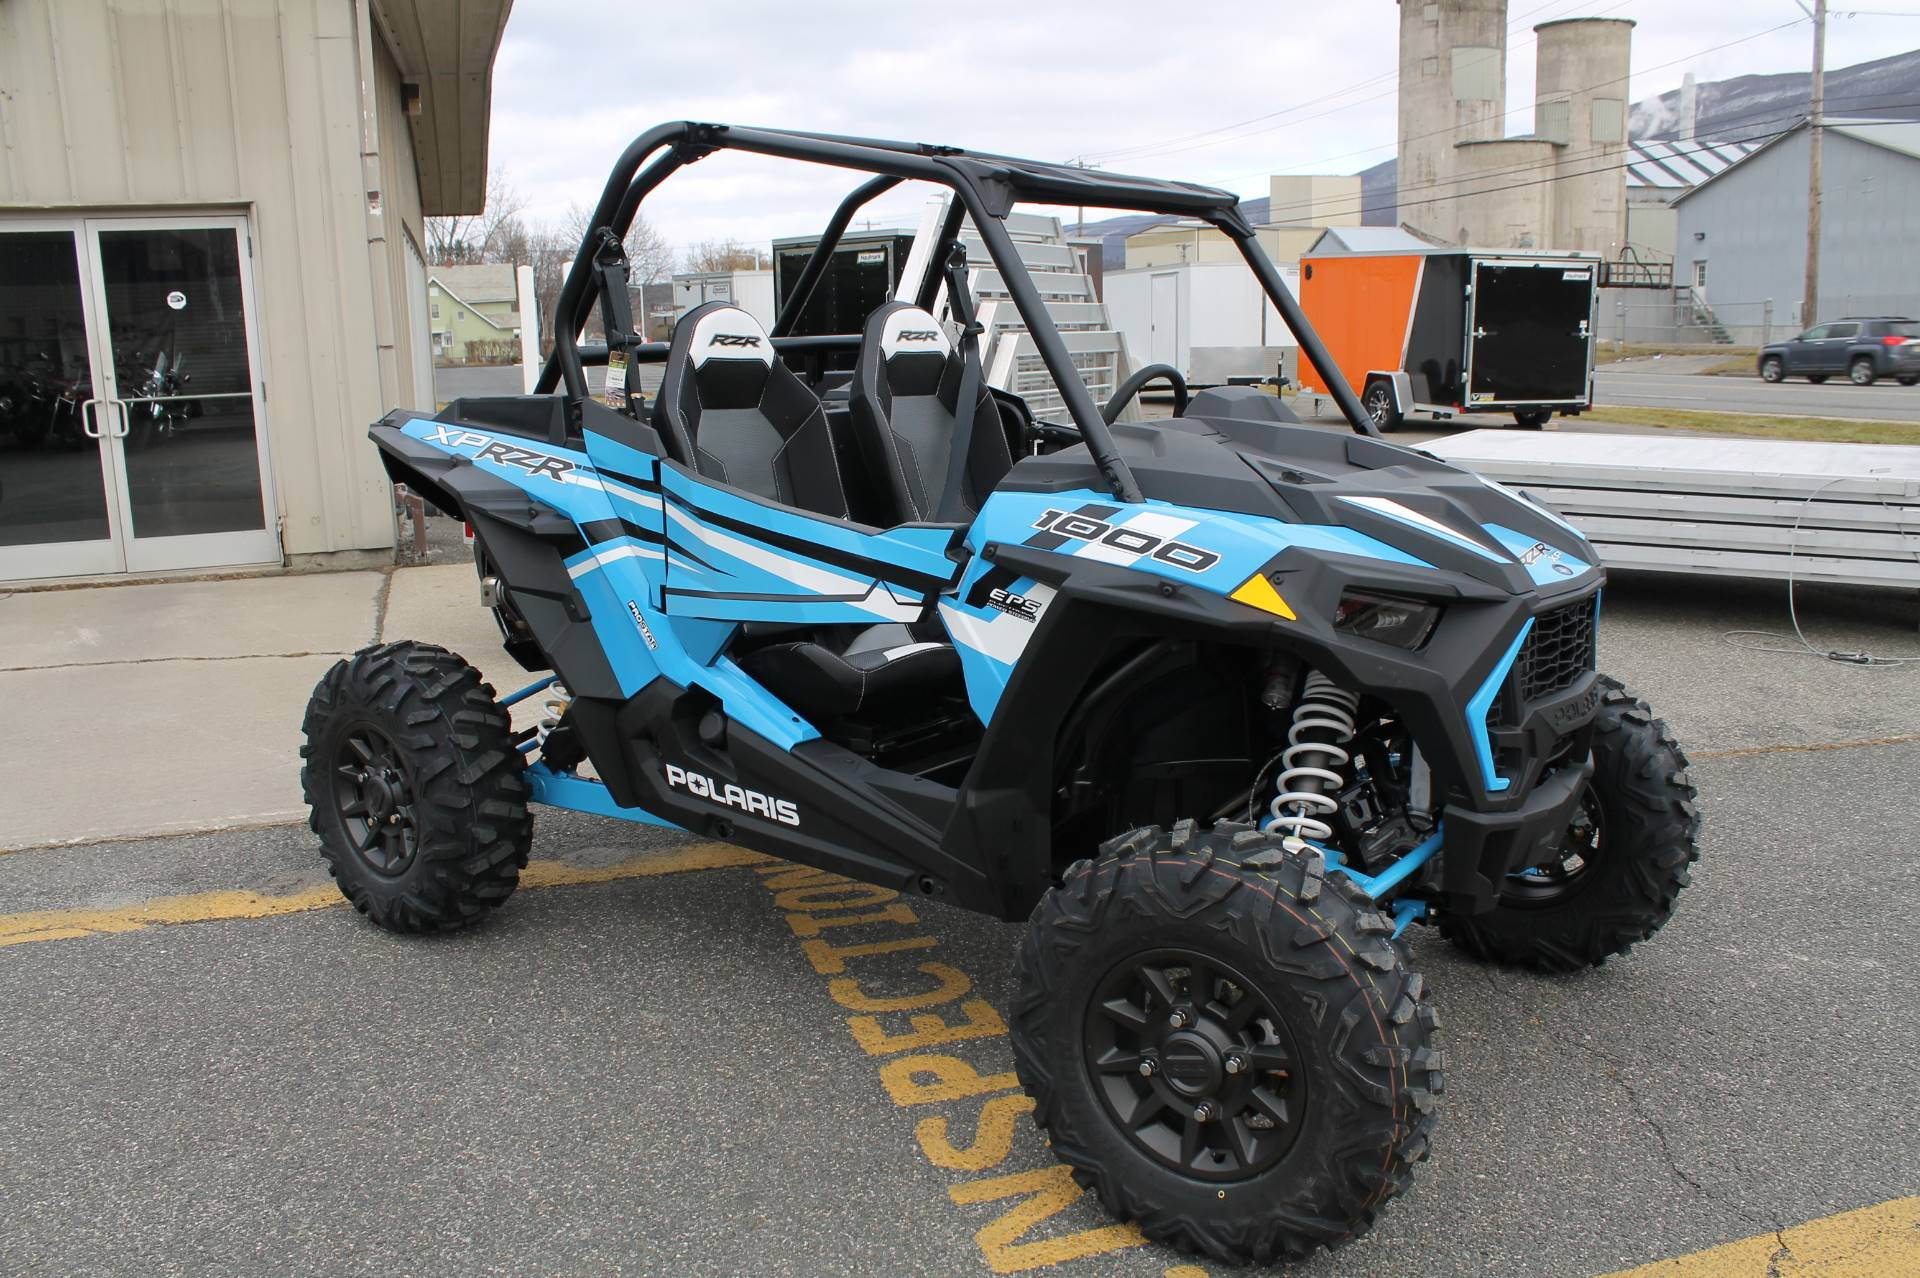 New 2019 Polaris RZR XP 1000 Utility Vehicles in Adams, MA | Stock